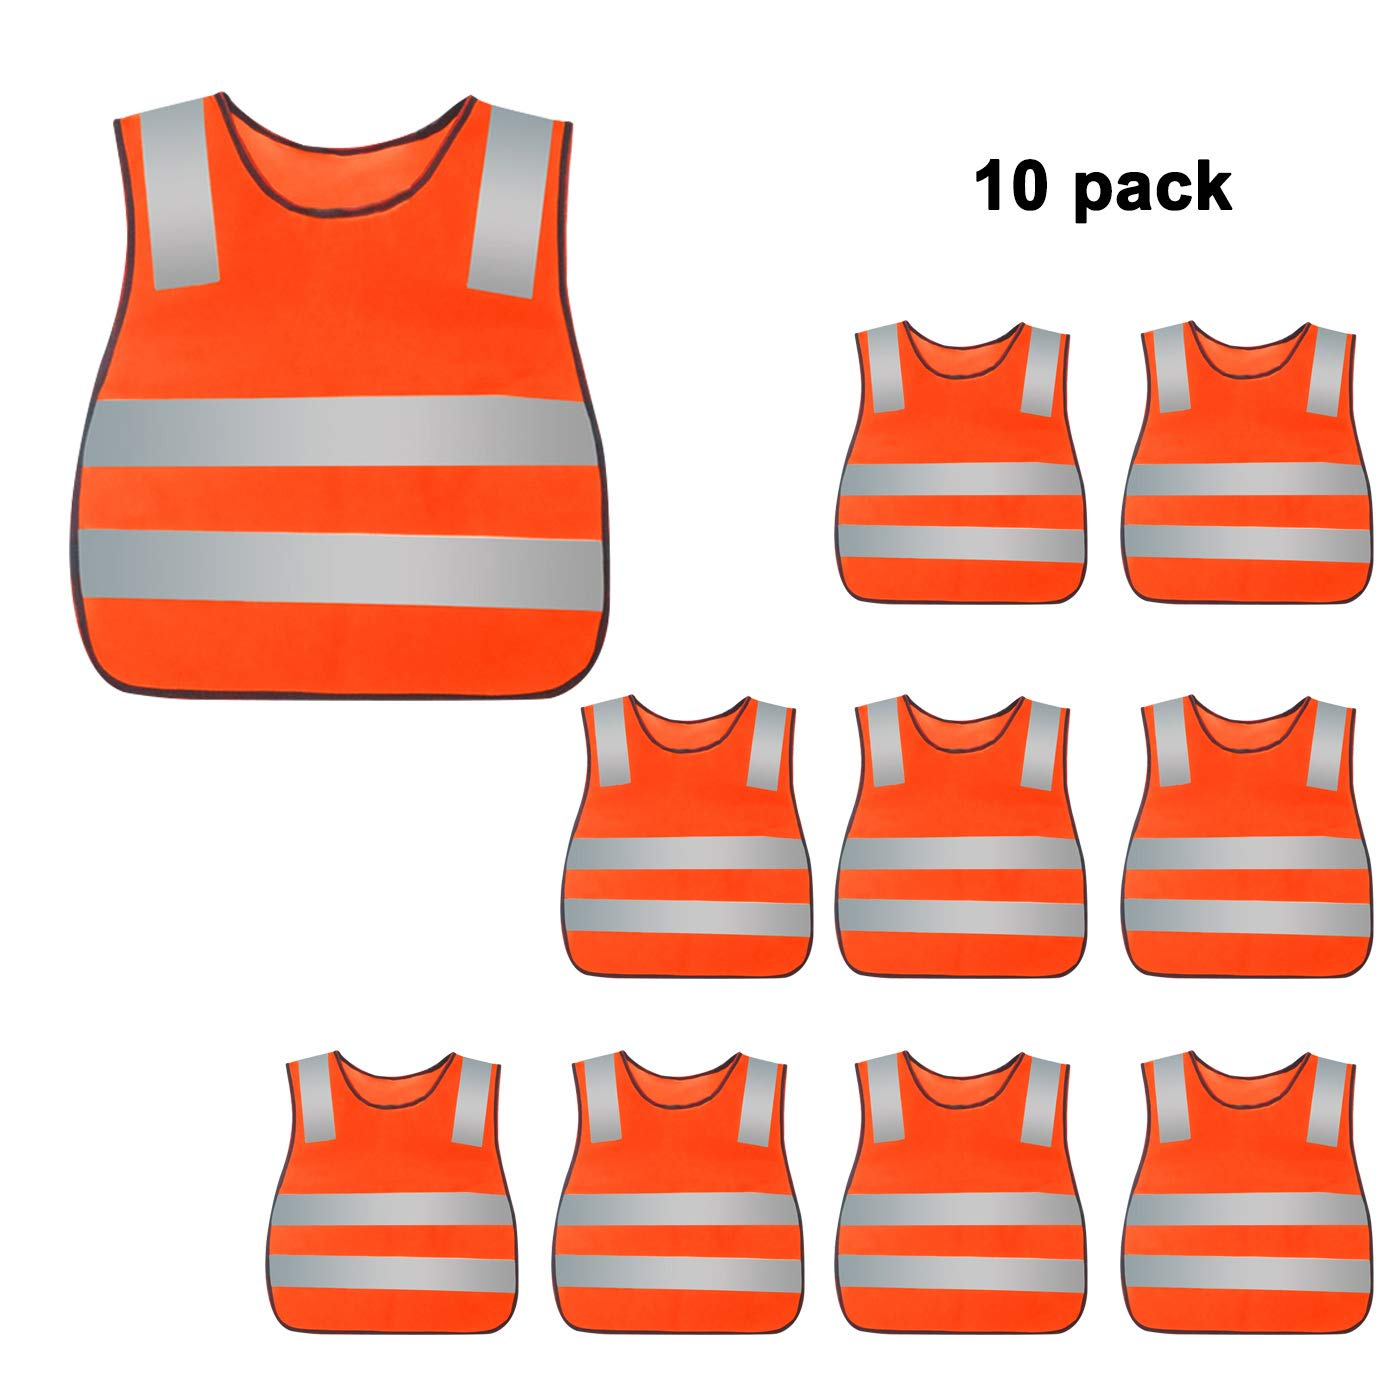 Kids Reflective Vest High Visibility Breathable Vest Bright Color Safety Vest Lightweight Traffic Vest Construction Worker Vest Neon Orange with Reflective Straps 10PCS by AIEOE (Image #1)